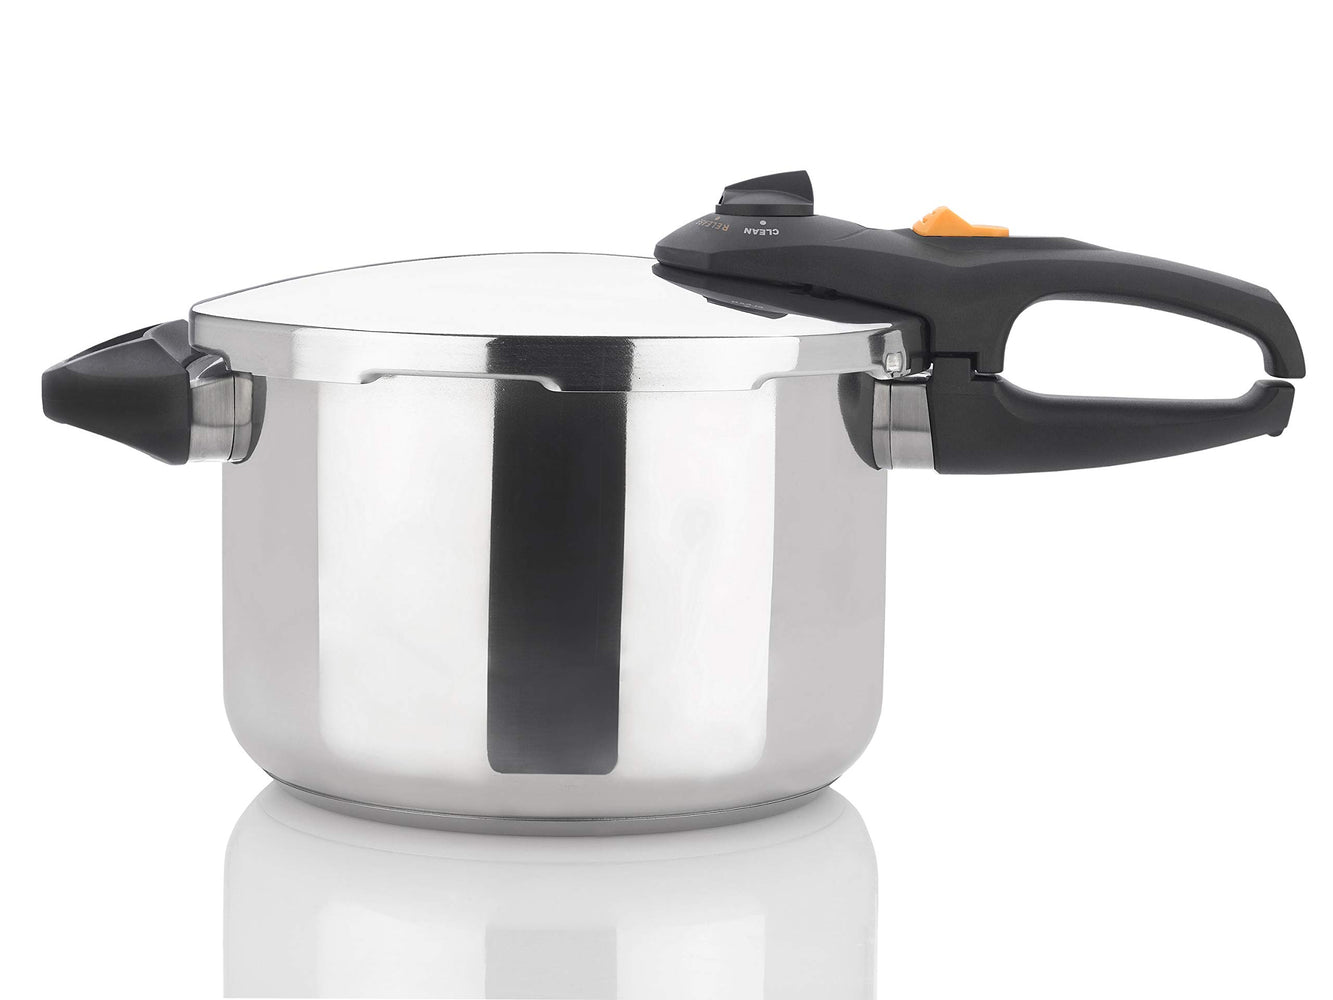 Duo Pressure Cooker (6.3 Quart)